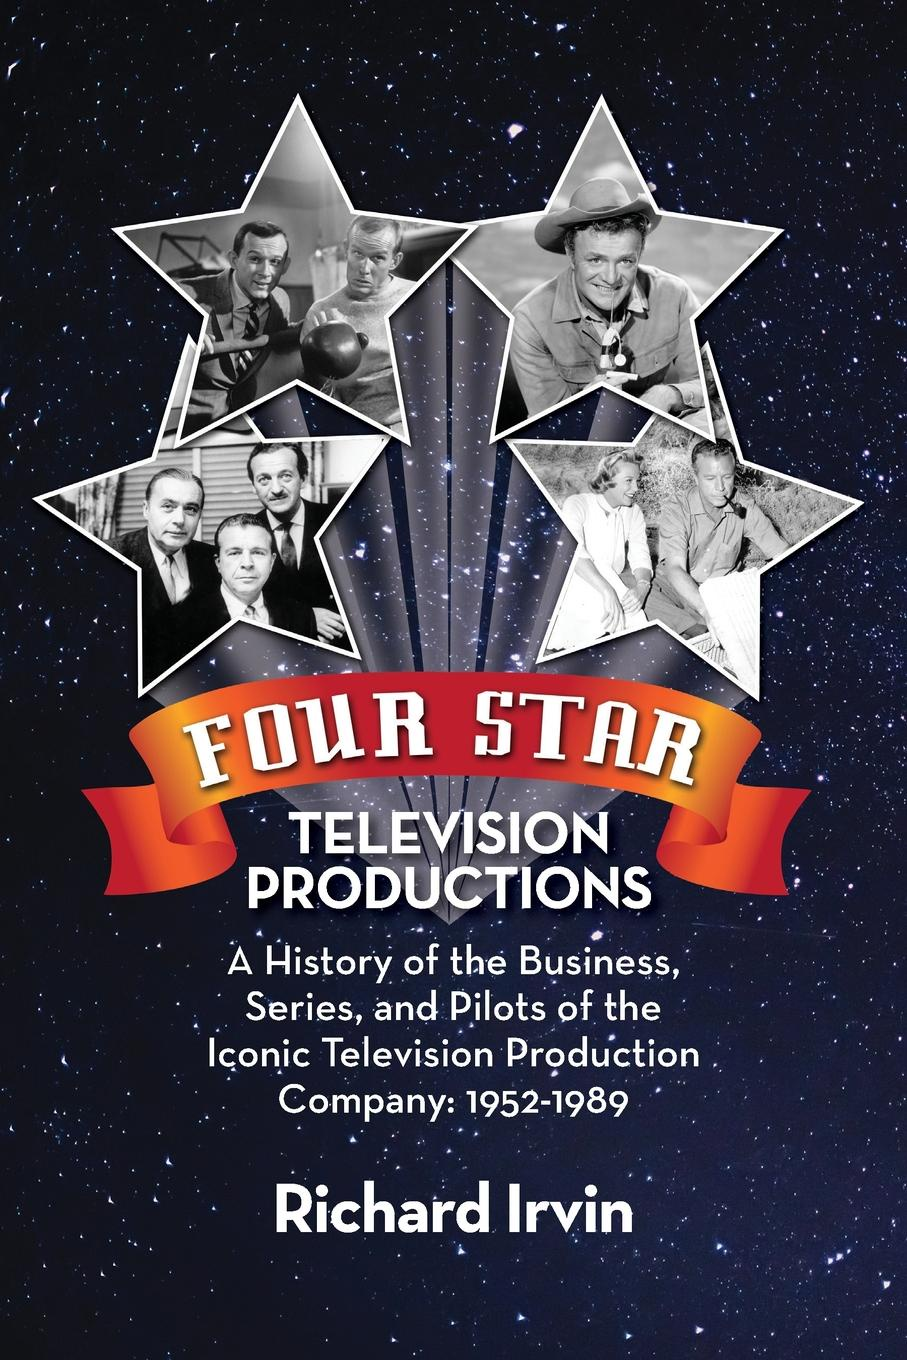 Richard Irvin. Four Star Television Productions. A History of the Business, Series, and Pilots of the Iconic Television Production Company: 1952-1989